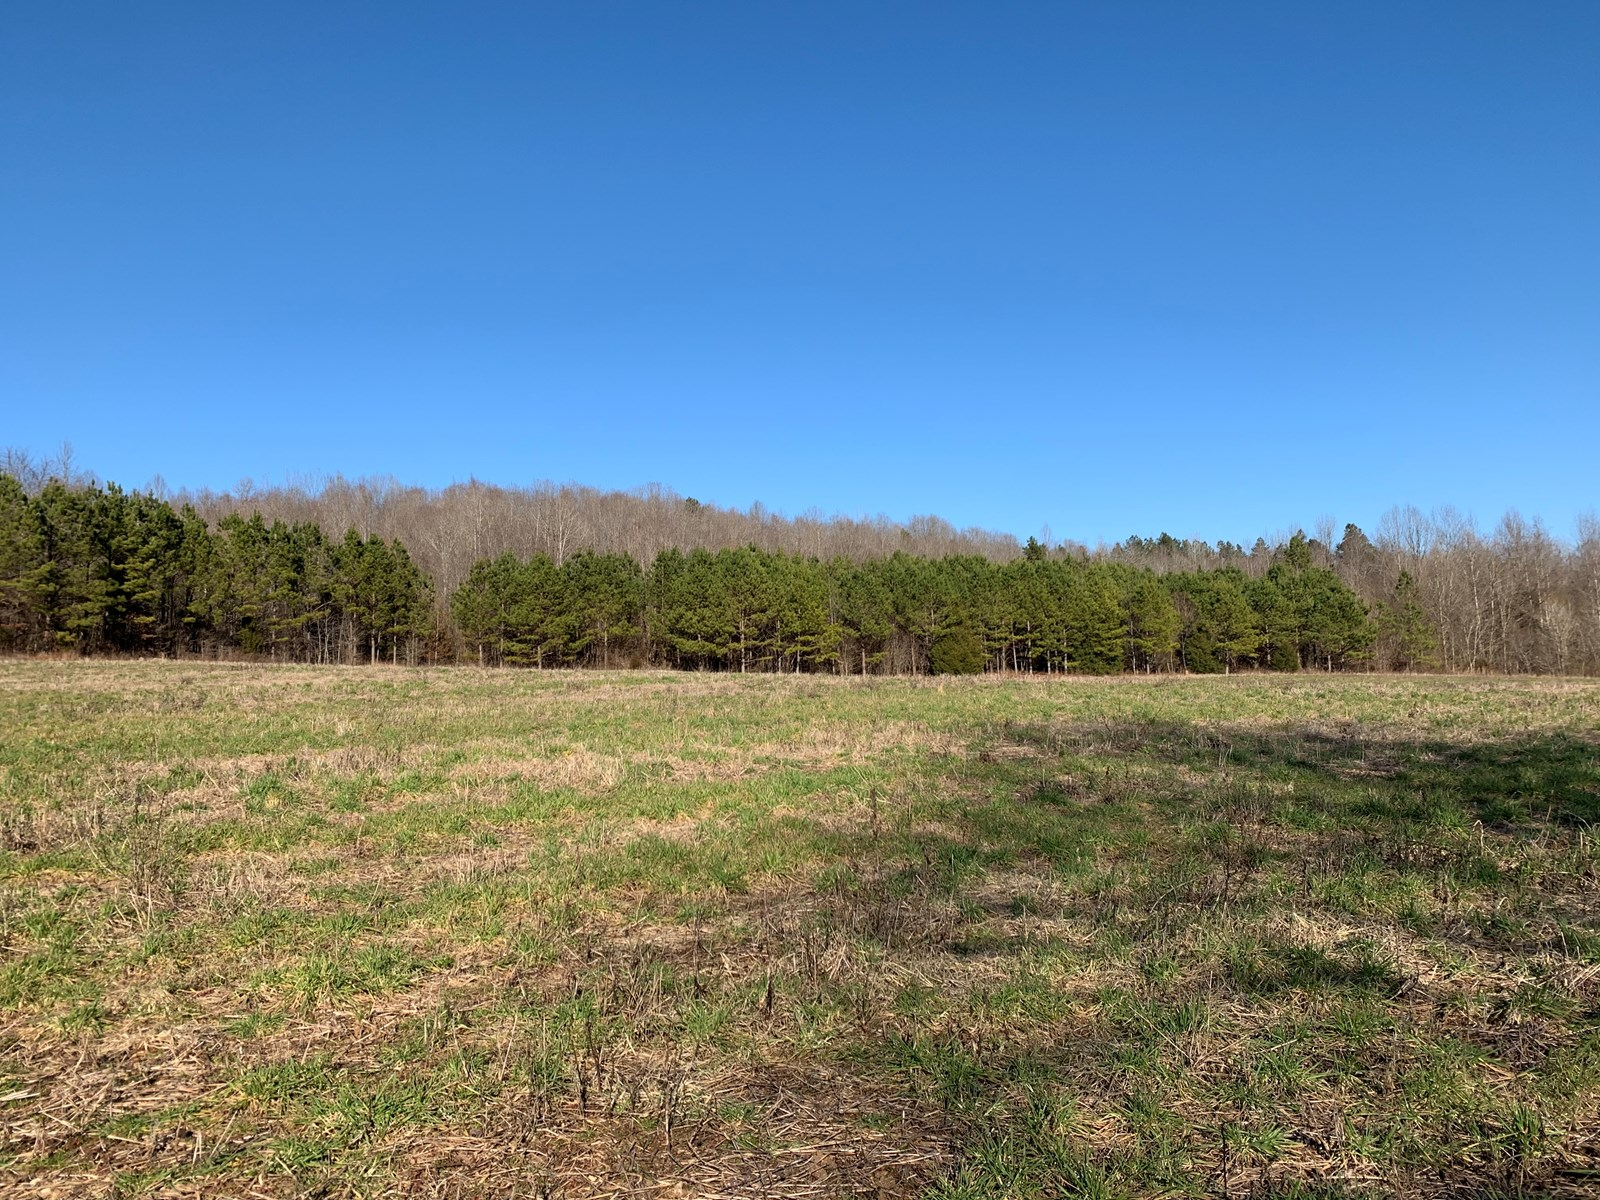 246 acres for sale in Southern Tennessee!